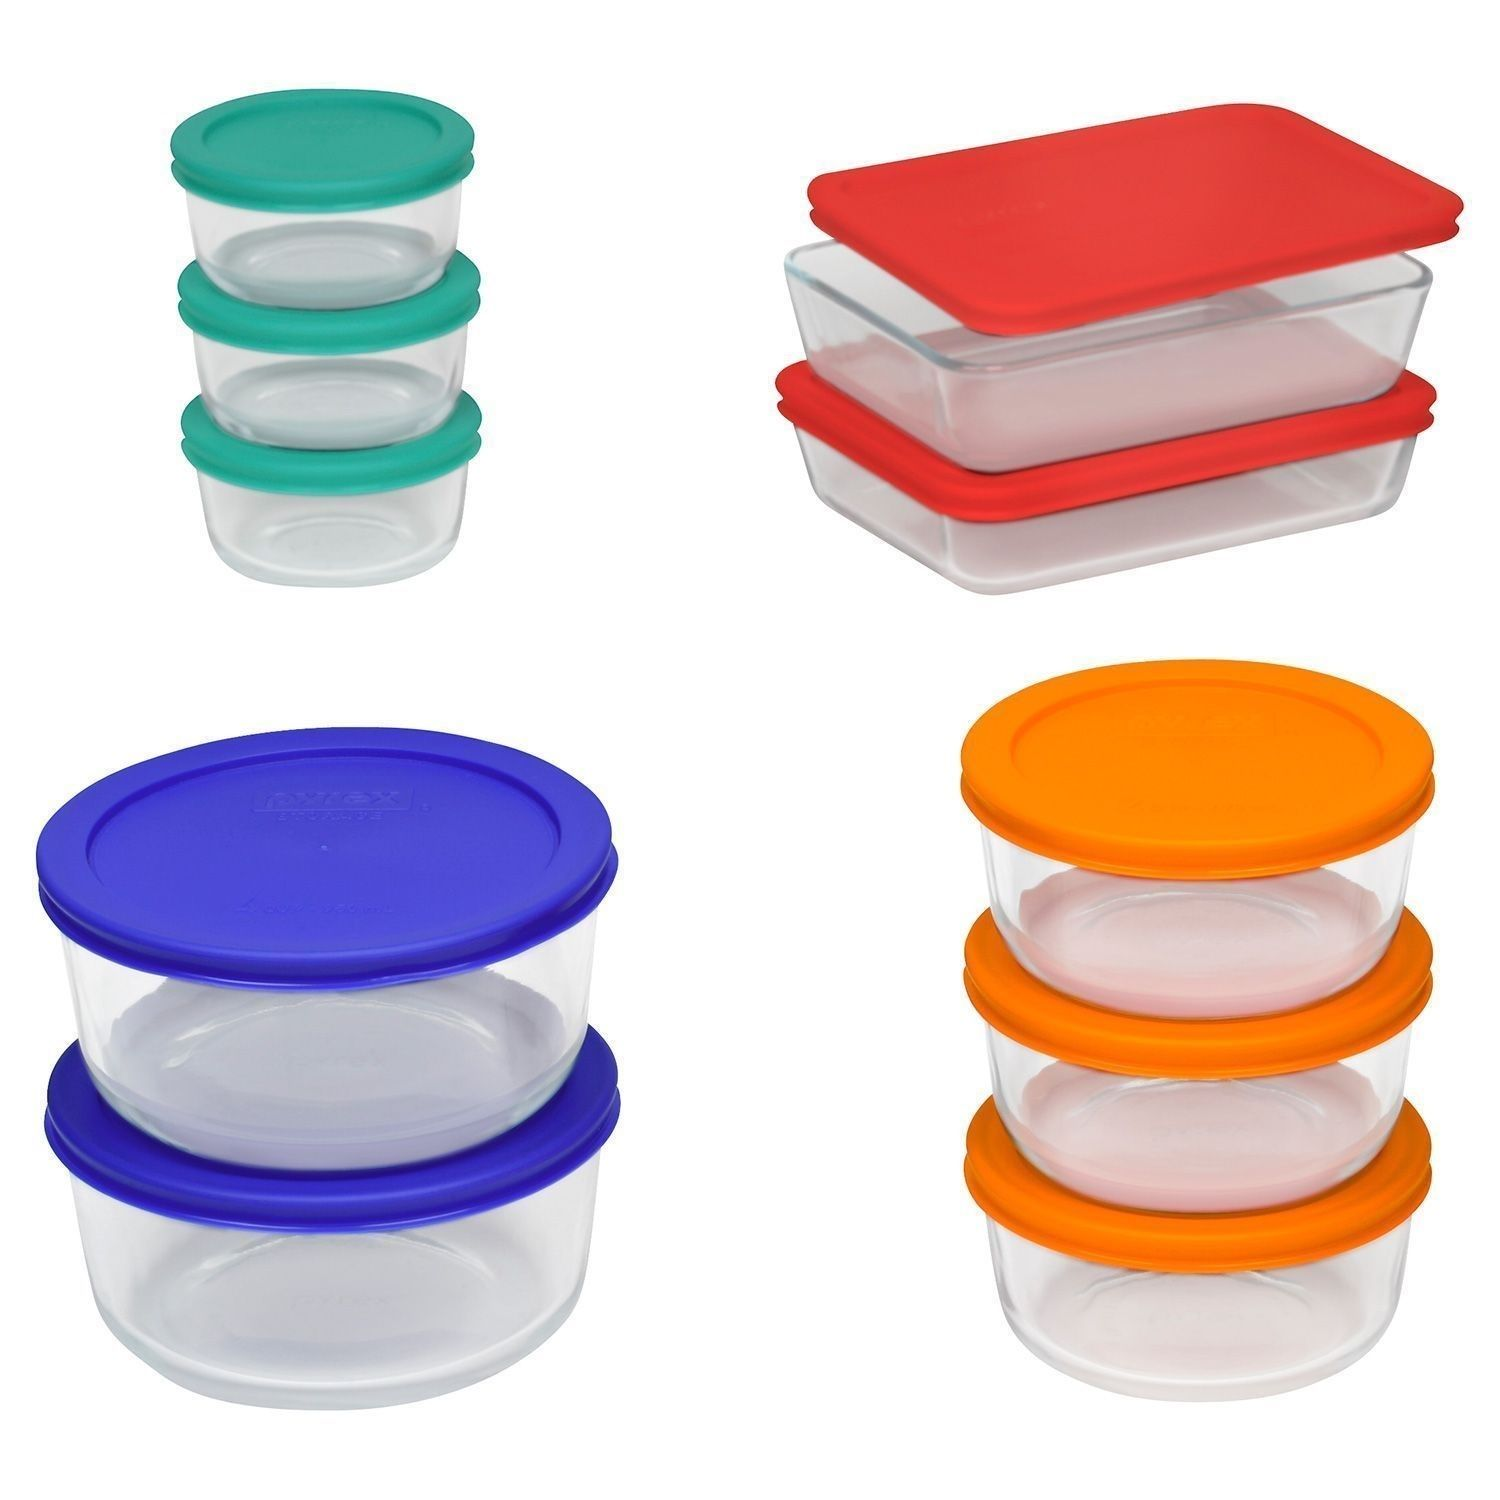 Pyrex 20 pc Glass Food Storage Set Bakeware Bowls with Lids Serving NEW FREE SHP 1